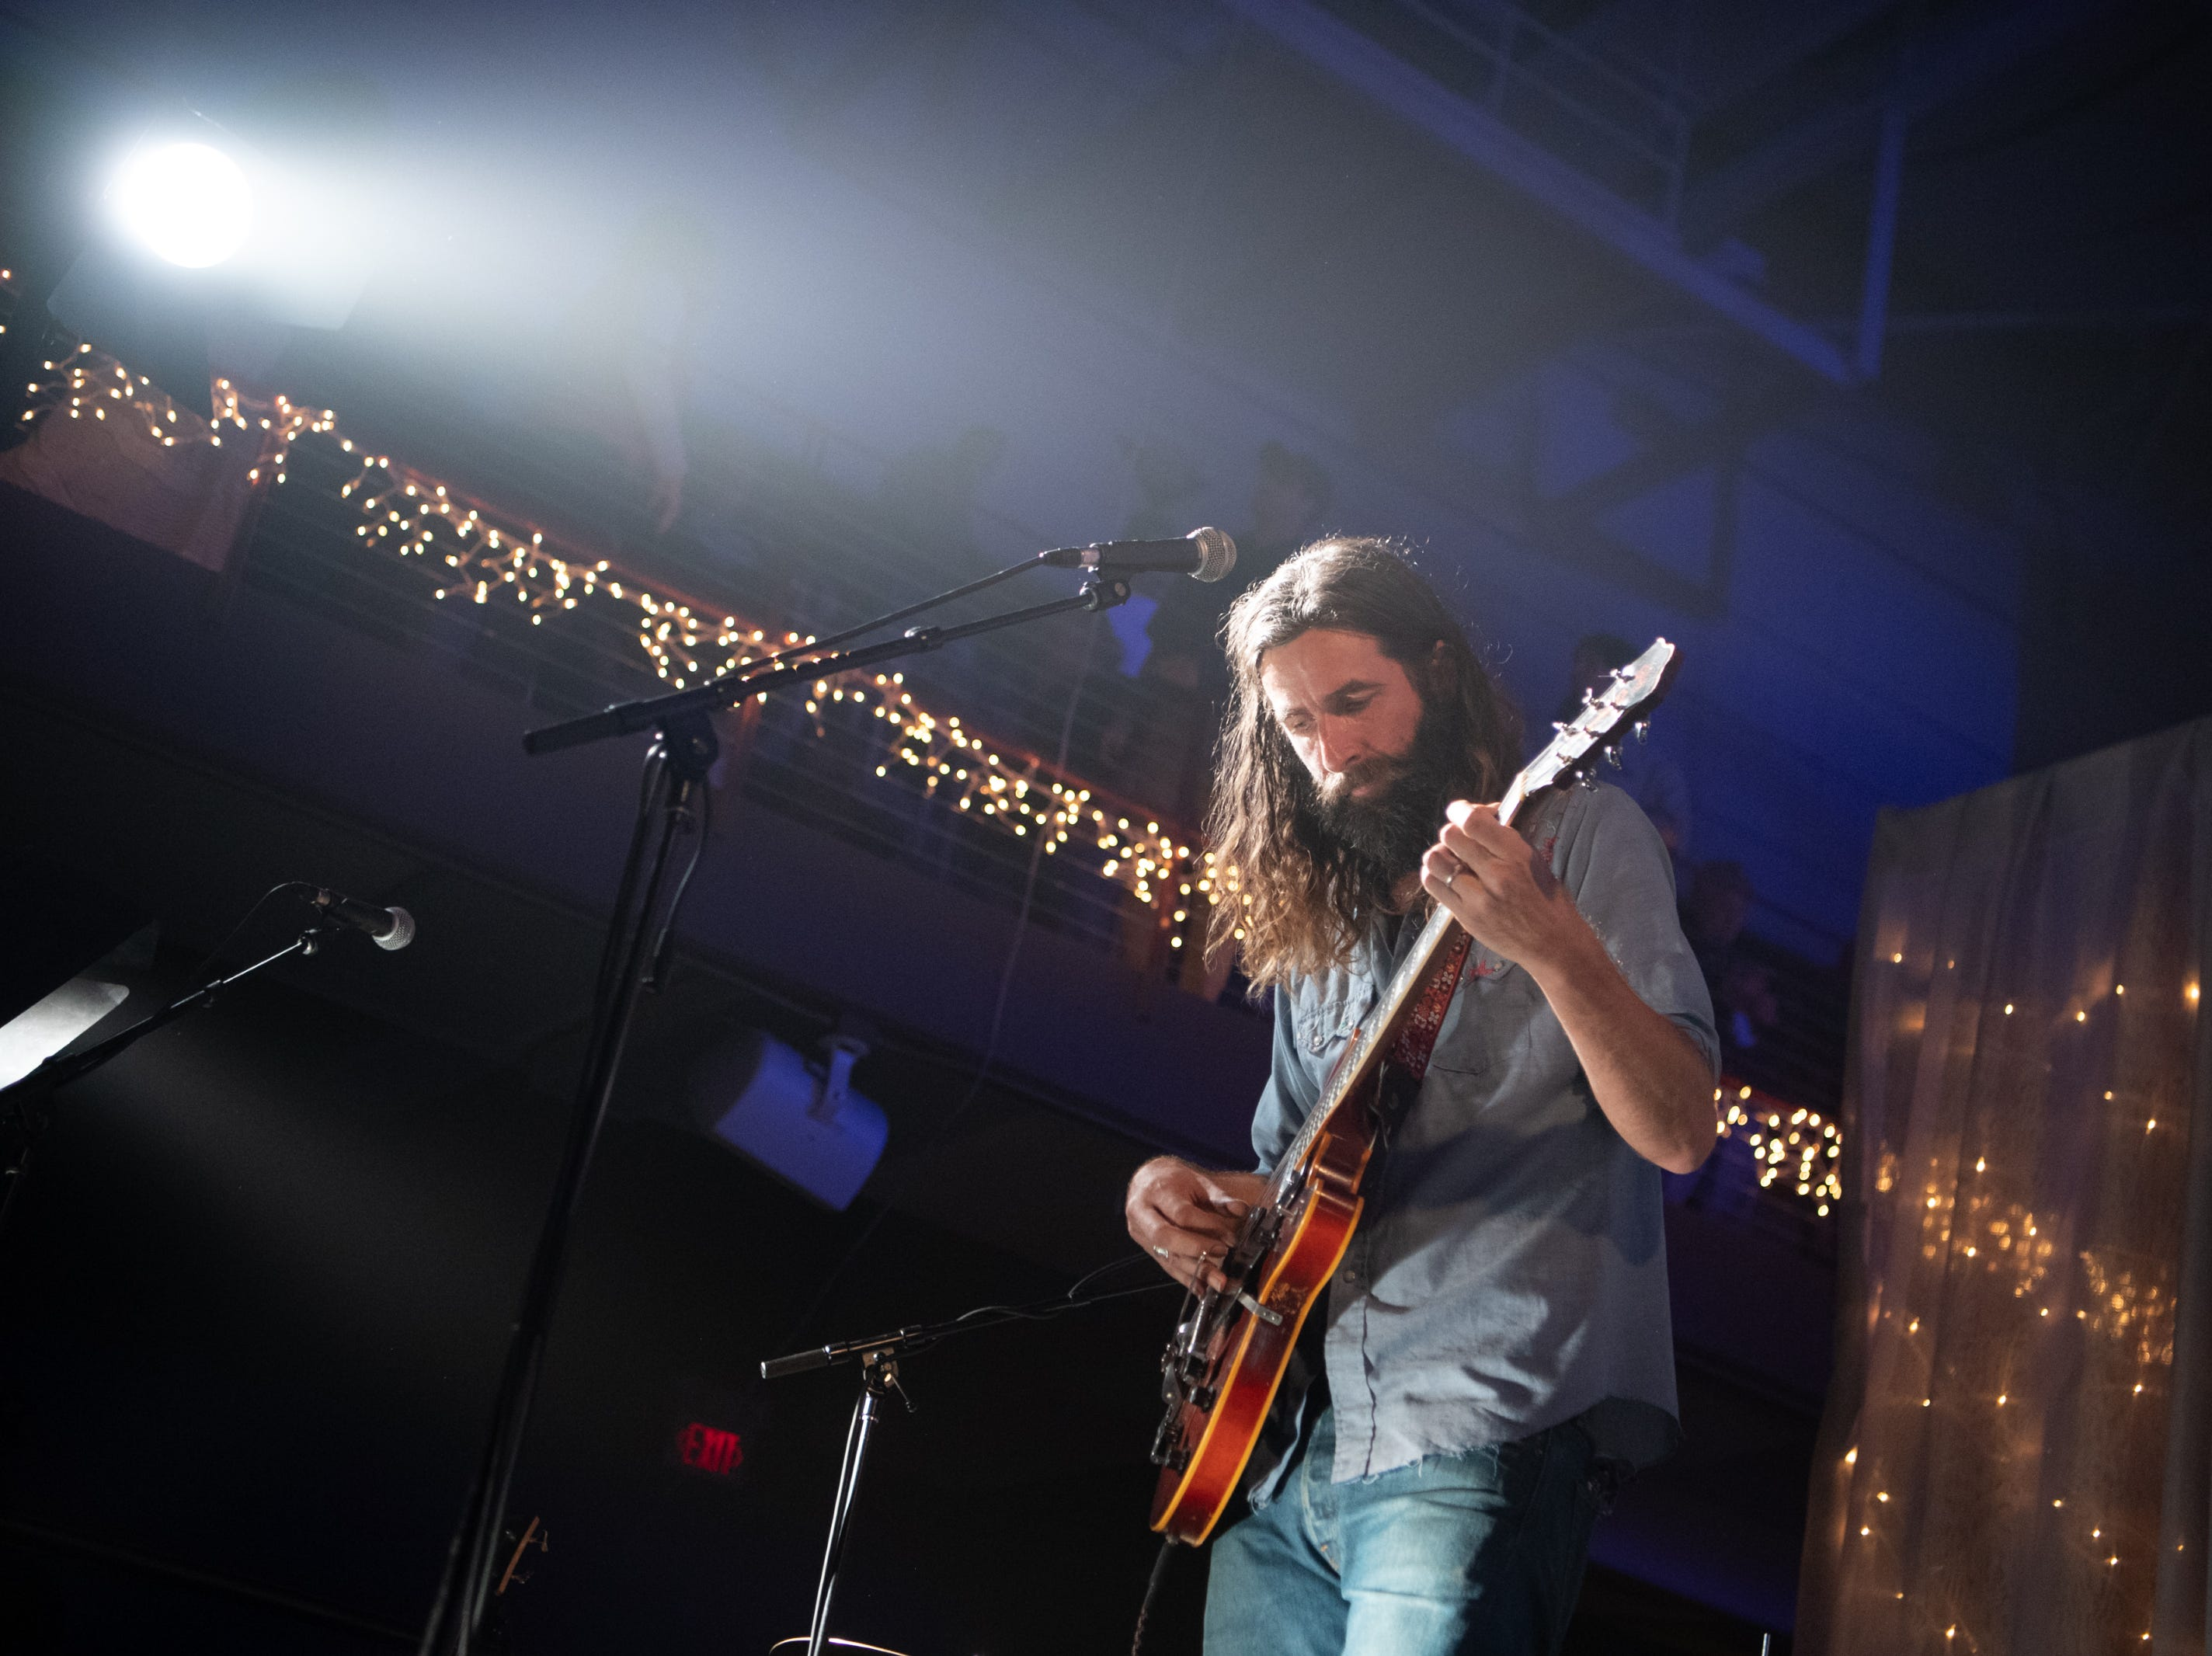 Tyler Ramsey, a former member of Band of Horses and his band performs on night one of the 30th annual Christmas Jam at the U.S Cellular Center in Asheville, Dec. 7, 2018.